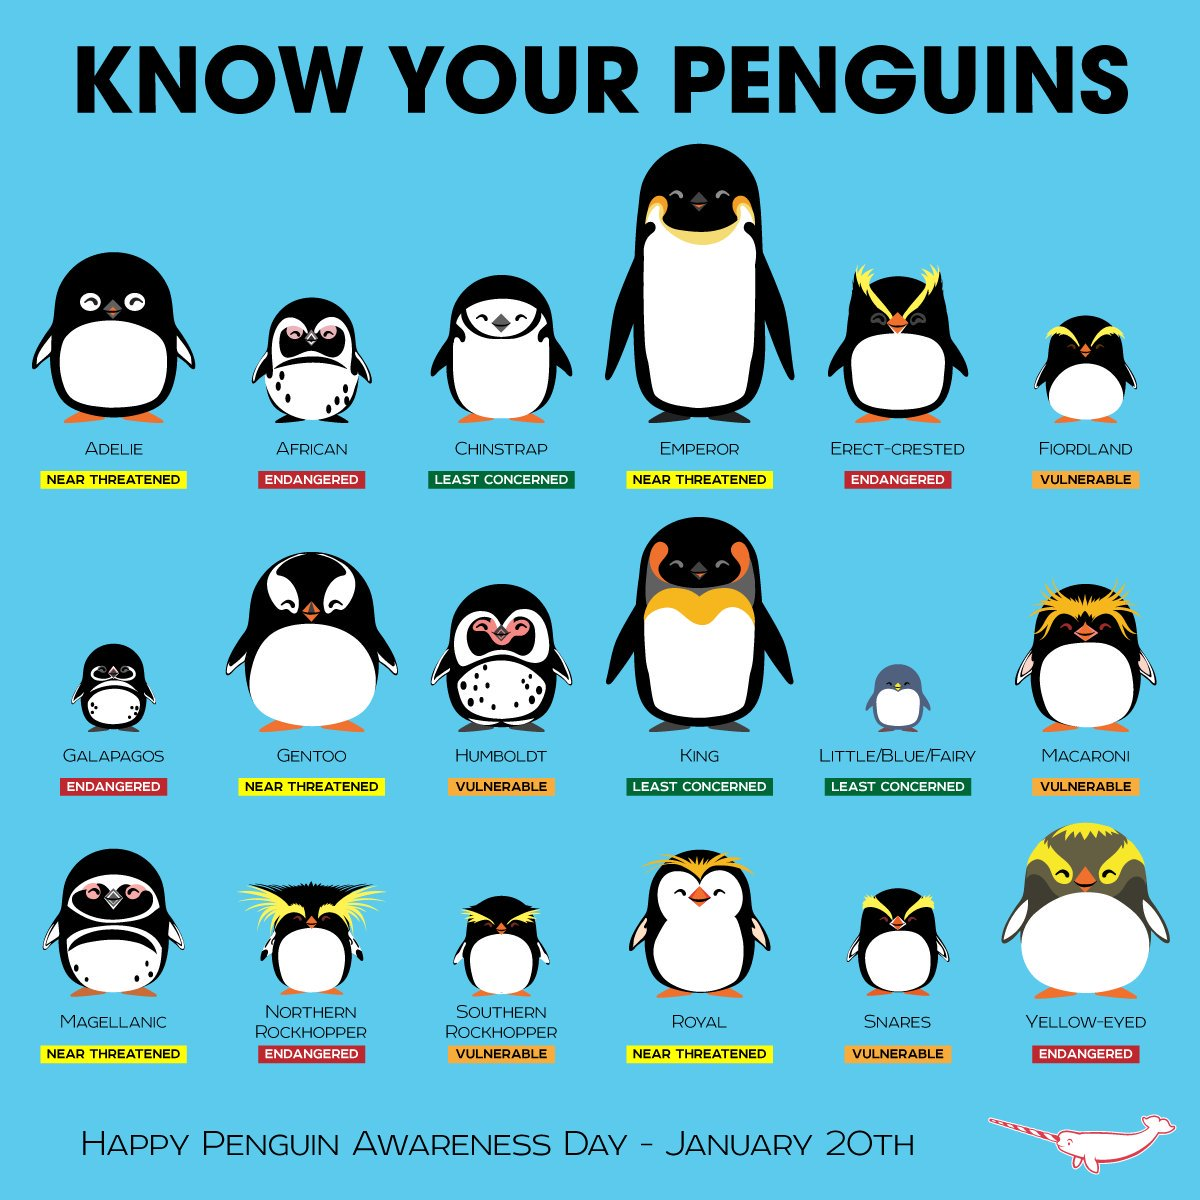 It's everybody's favourite day, #PenguinAwarenessDay! So it's important to know your penguins. Spot them too https://t.co/zDq02NNos0